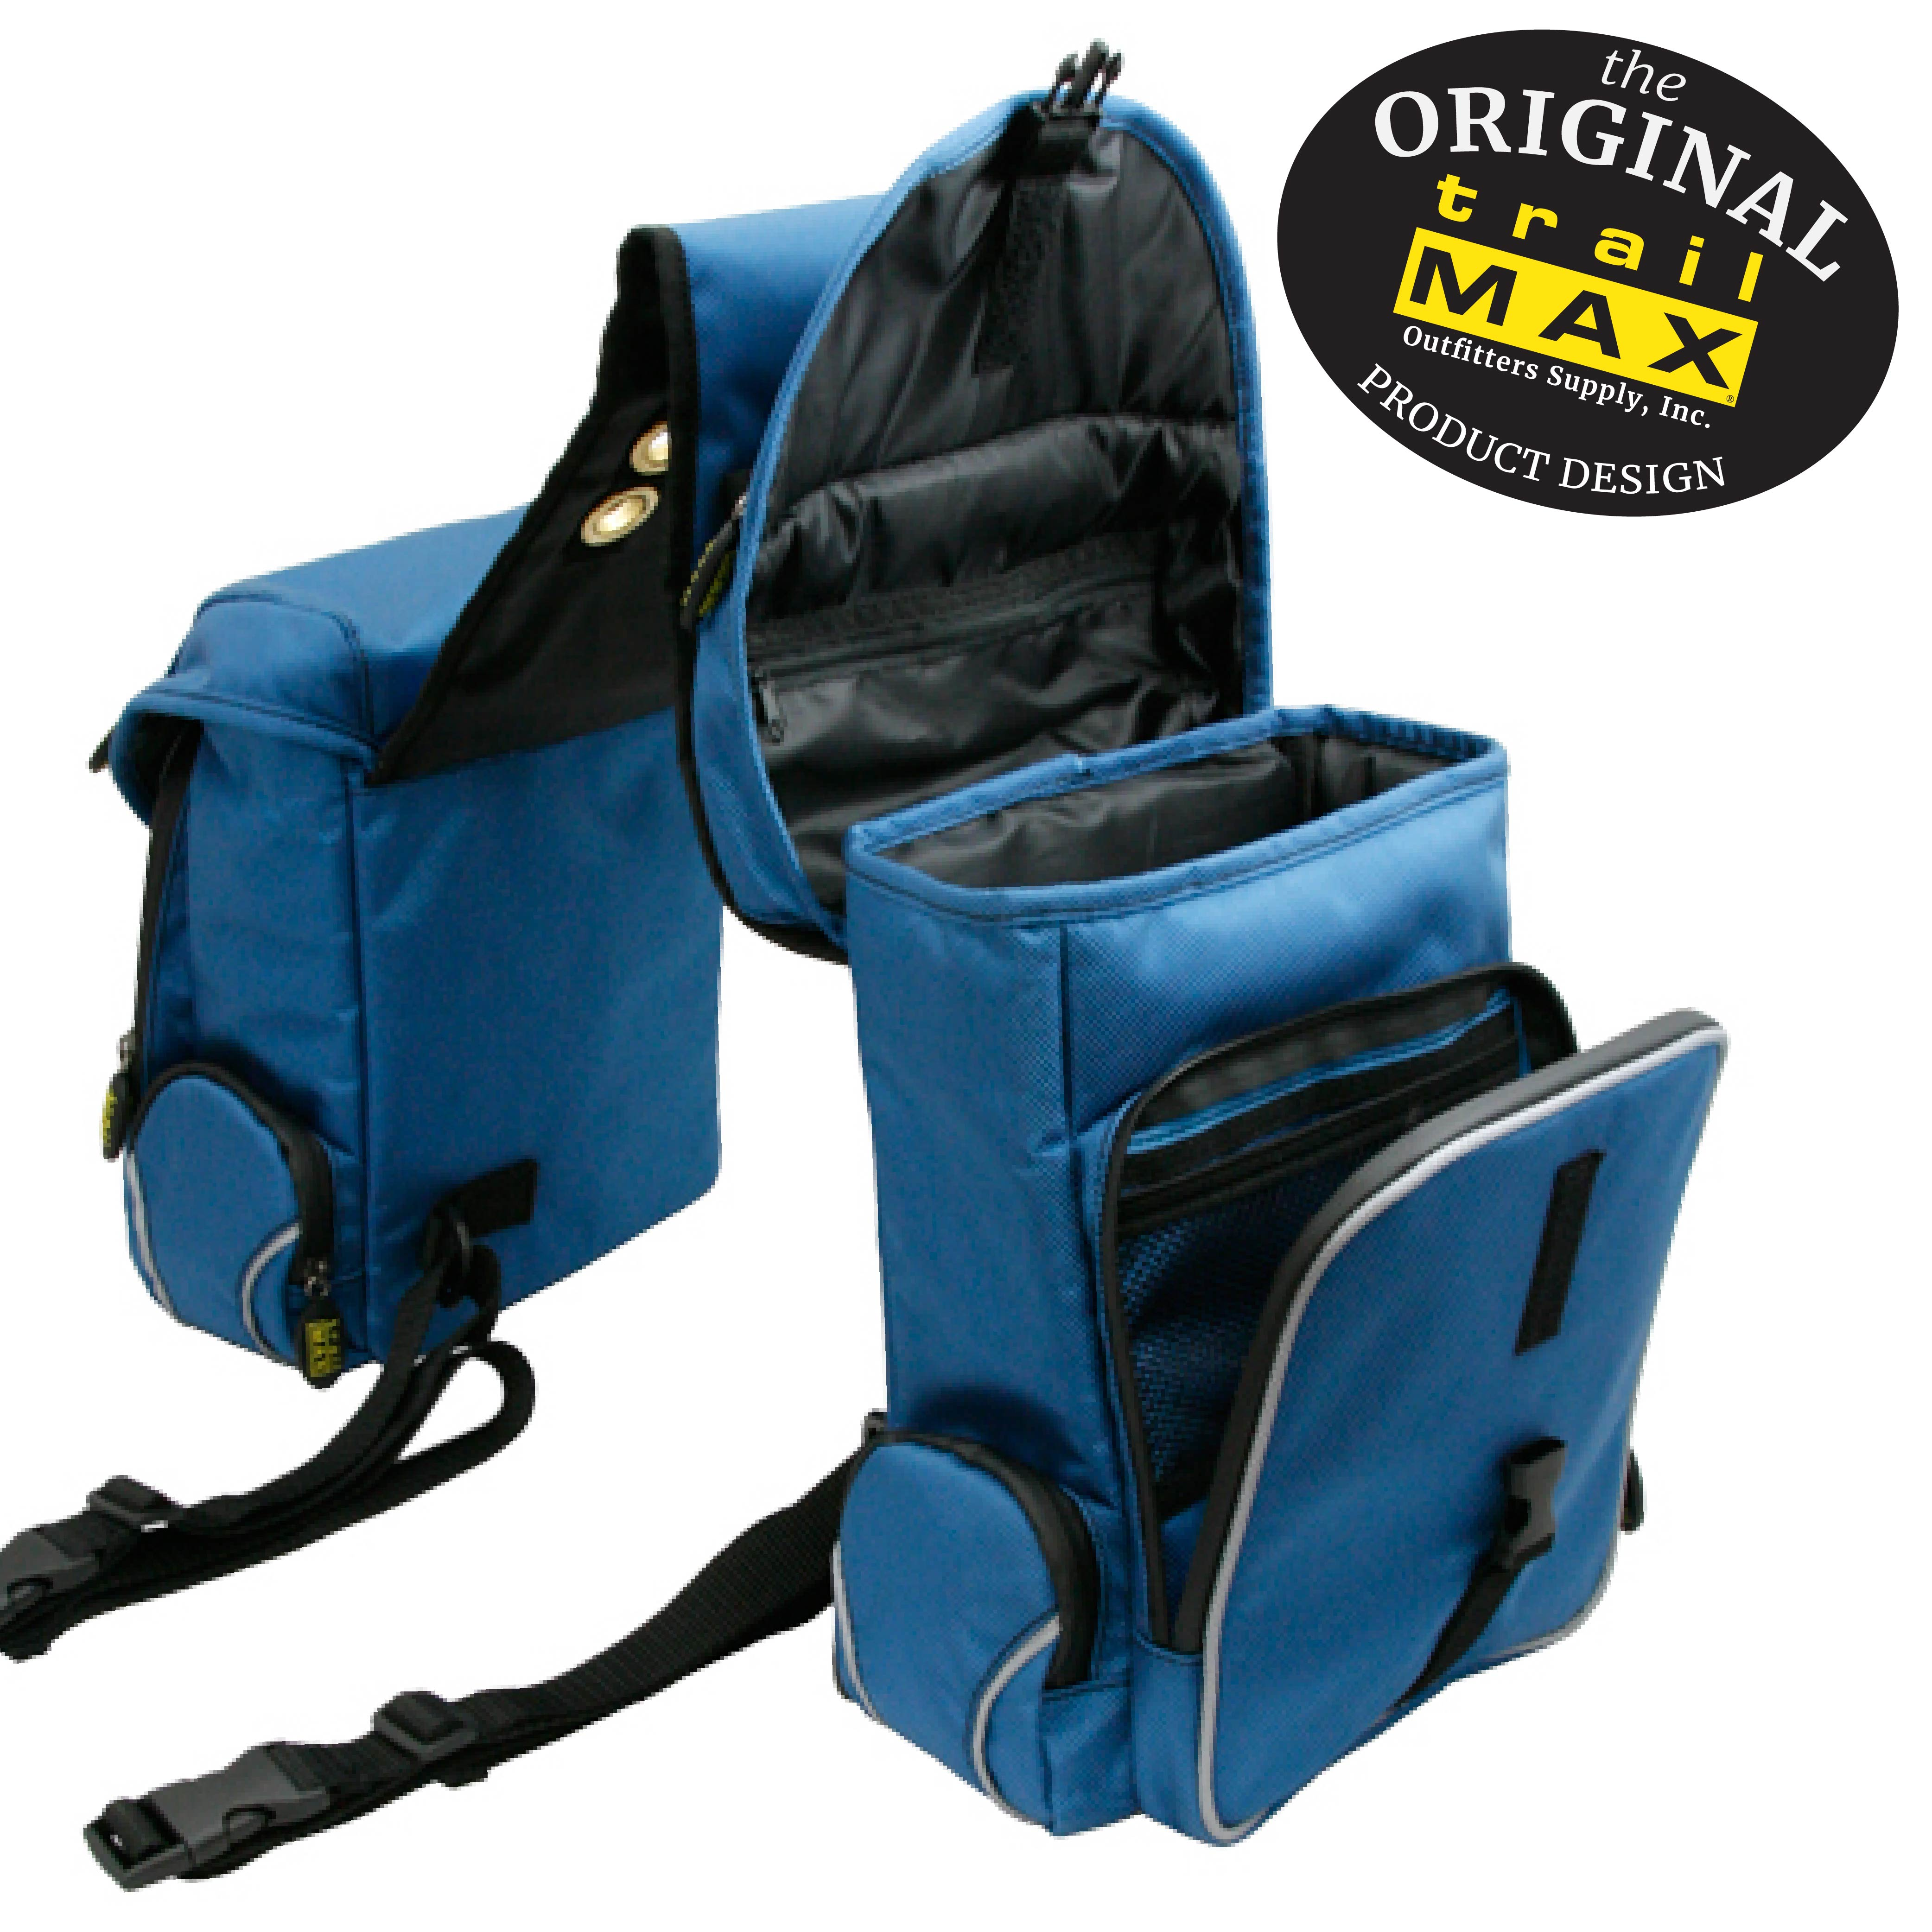 Lava Red /& Black Outfitters Supply in Black /& Sand Glacier Blue /& Frost TrailMax 500 Series Insulated /& Padded Back Pocket Saddlebags for Trail Riding 1680-denier Ripstop Nylon with PVC Water Resistant Coating